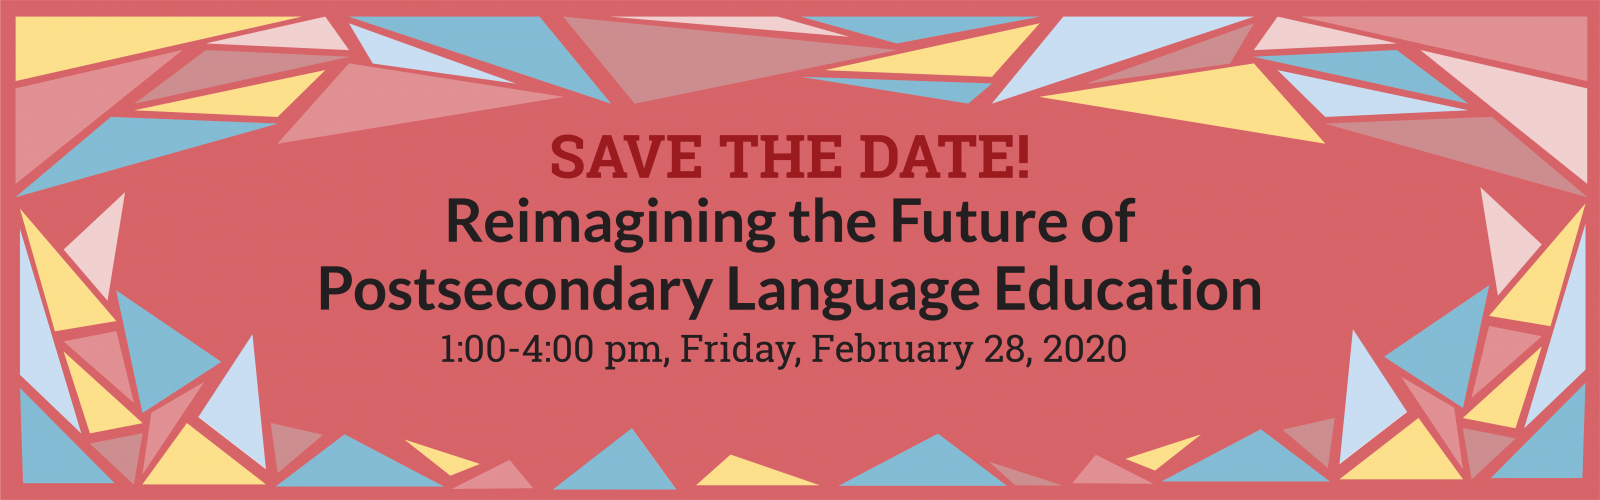 Save the Date! Reimagining the Future of Secondary Language Education 1:00 to 4:00 pm Friday, February 28, 2020